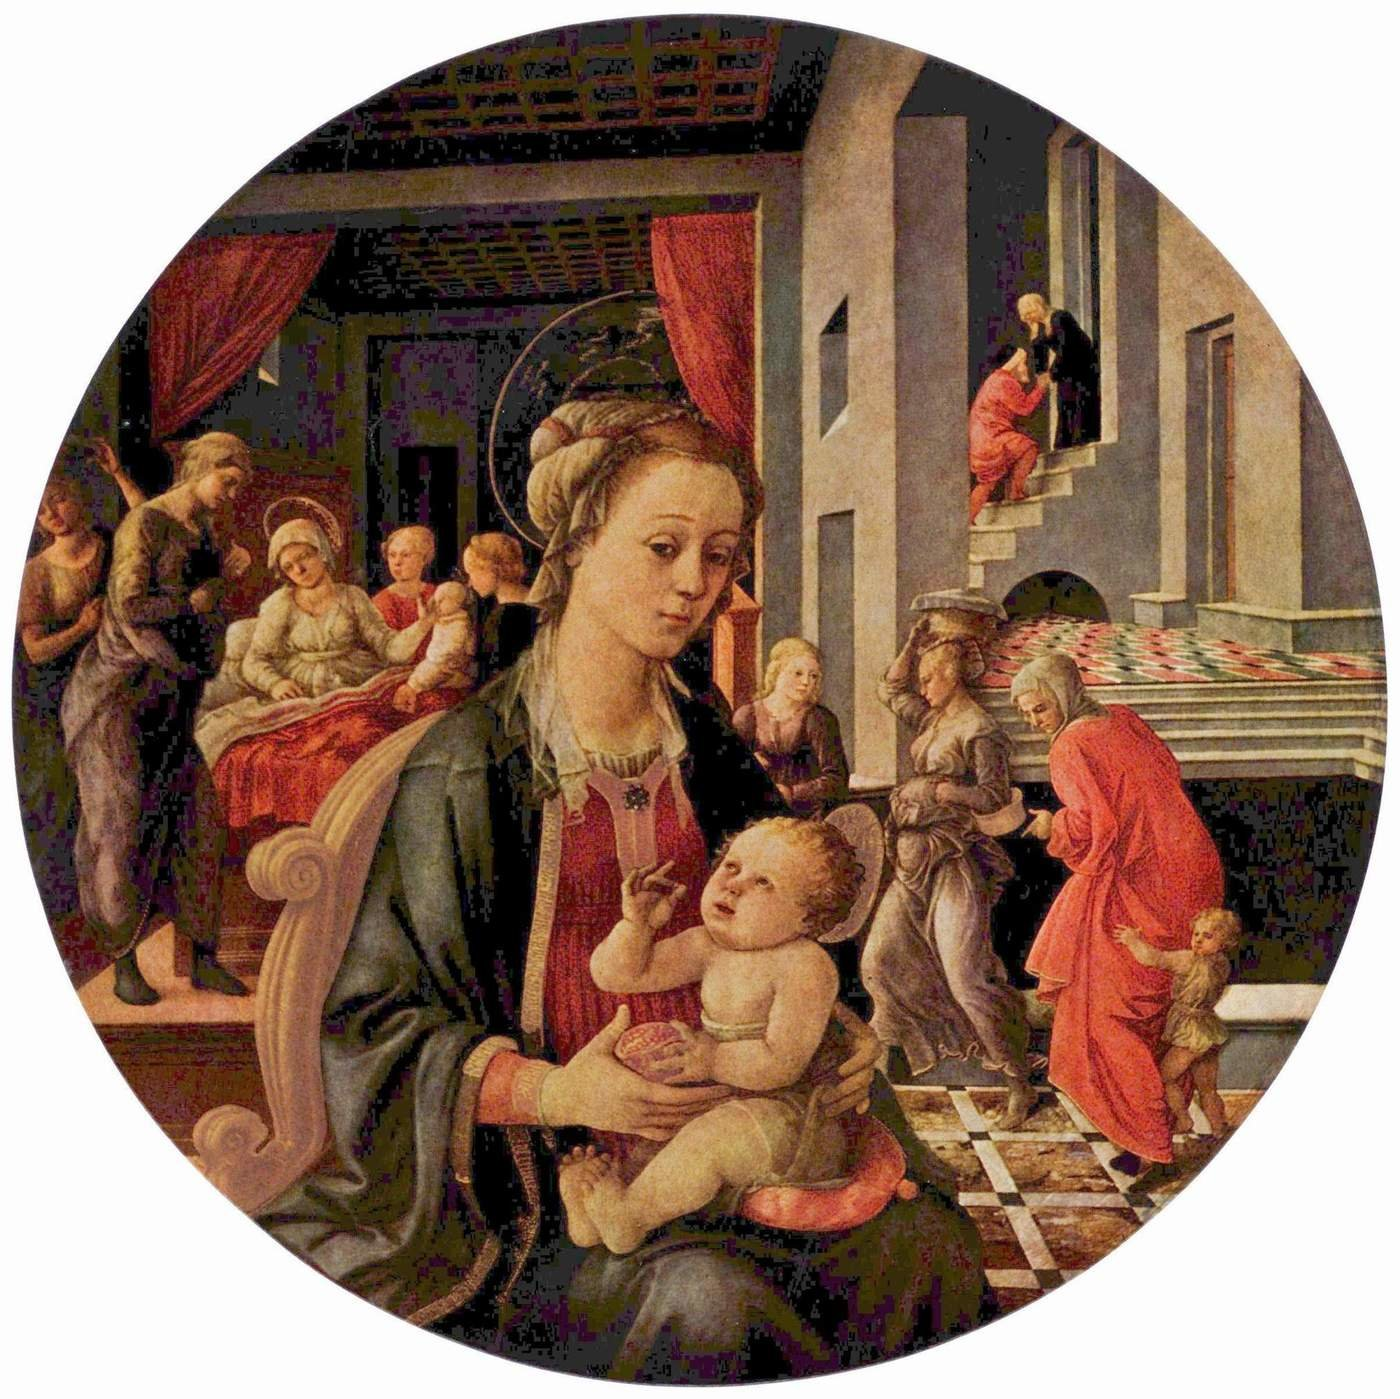 a new monumental painting by filippino lippi